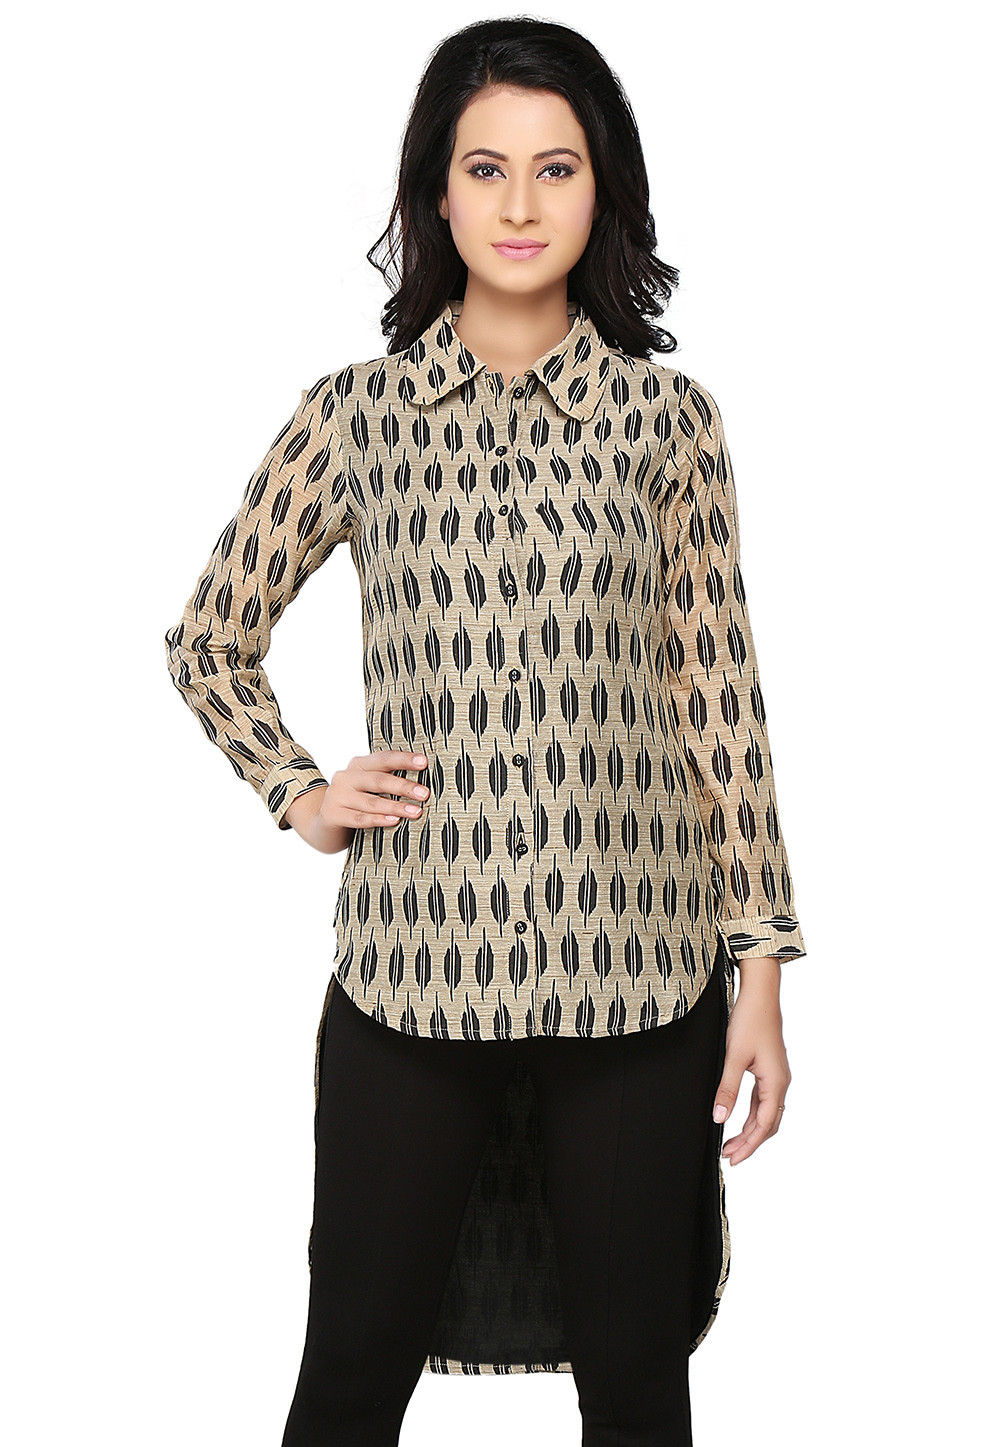 Block Printed Chanderi Silk Shirt Style Tunic in Beige